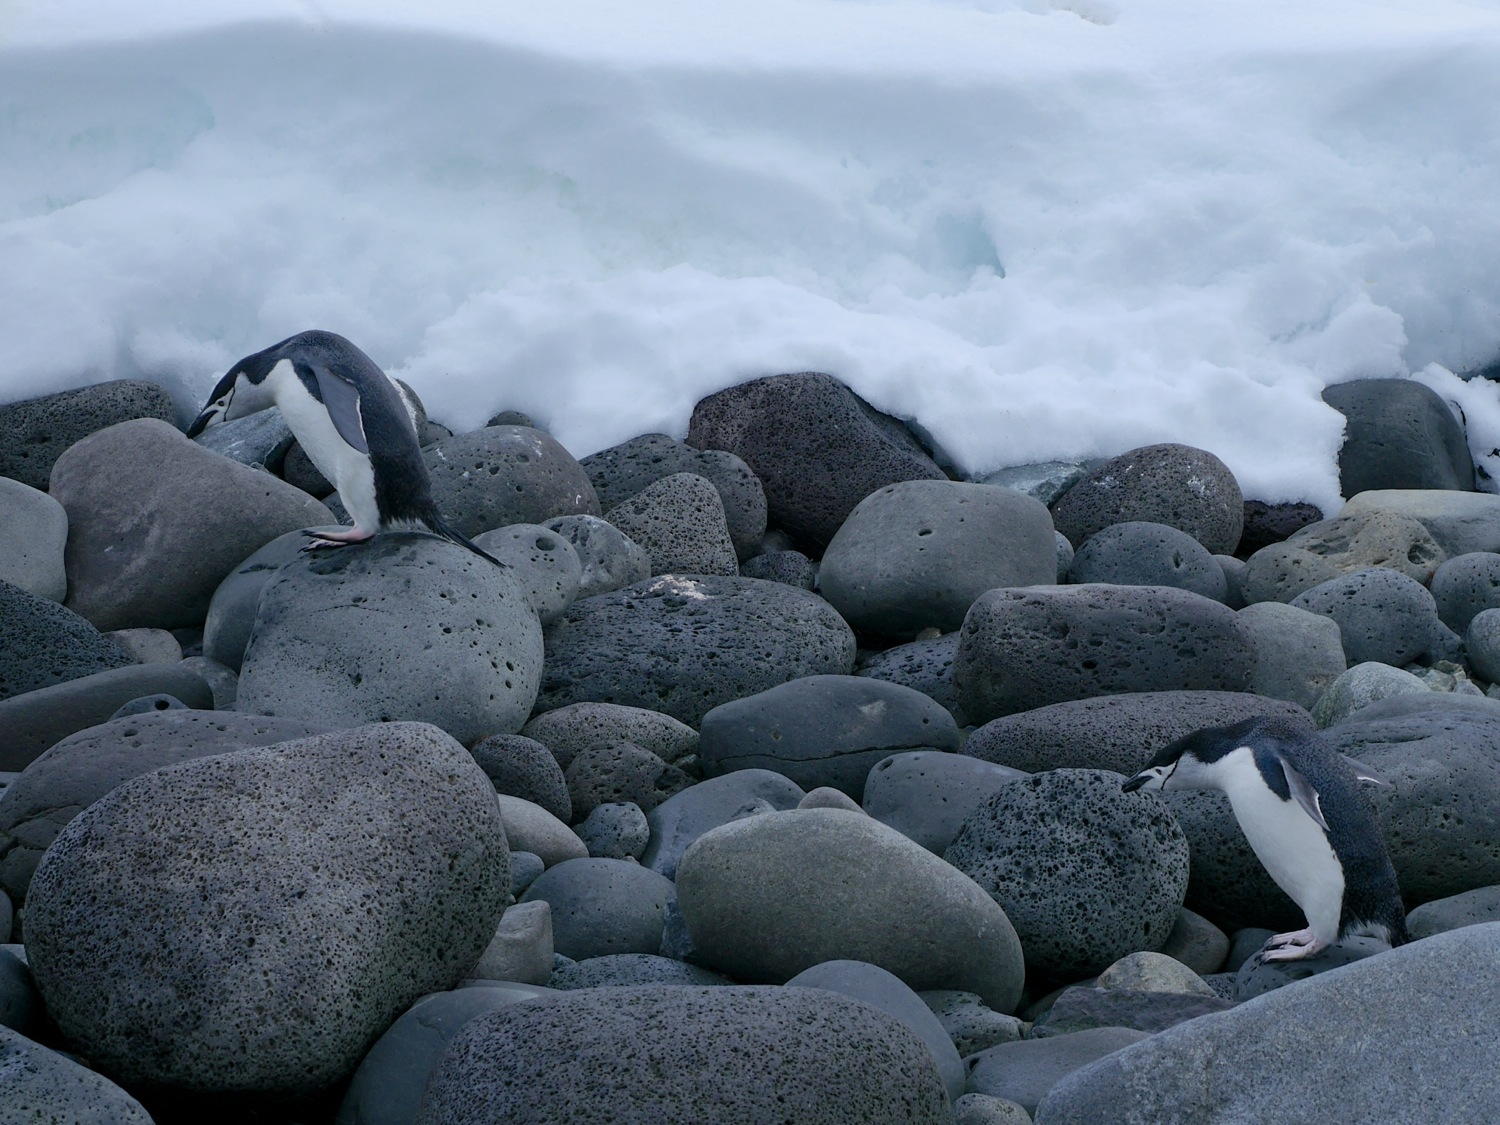 Chinstrap Penguins negotiating the basalt boulders on the shores of Penguin Island. Photo: Chris Rowan, 2013.